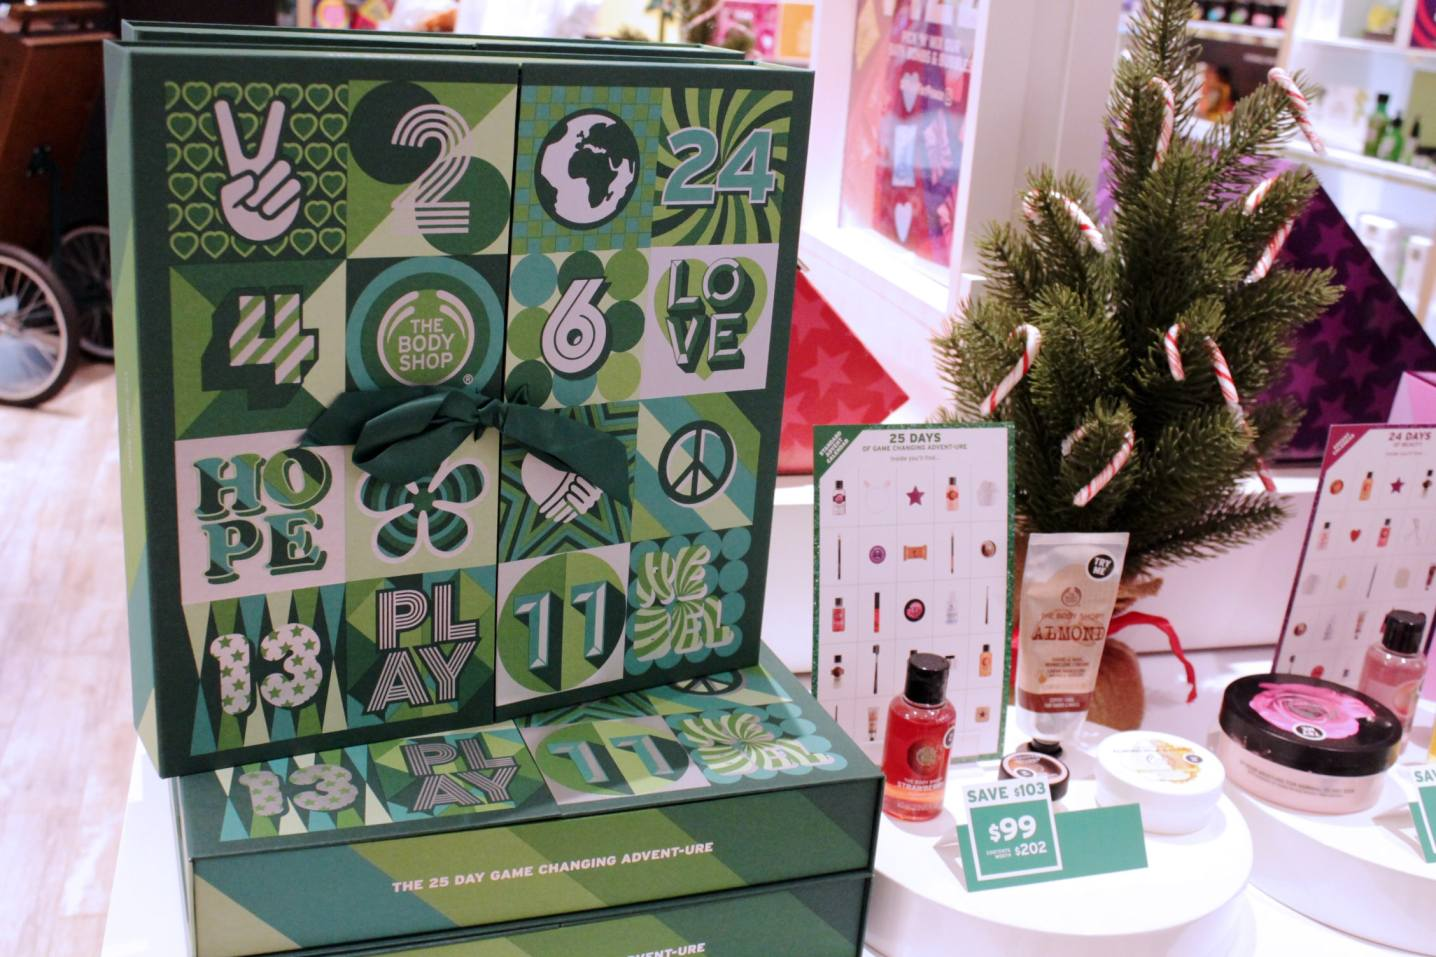 Body Shop 25 Days Game Changing Calendar